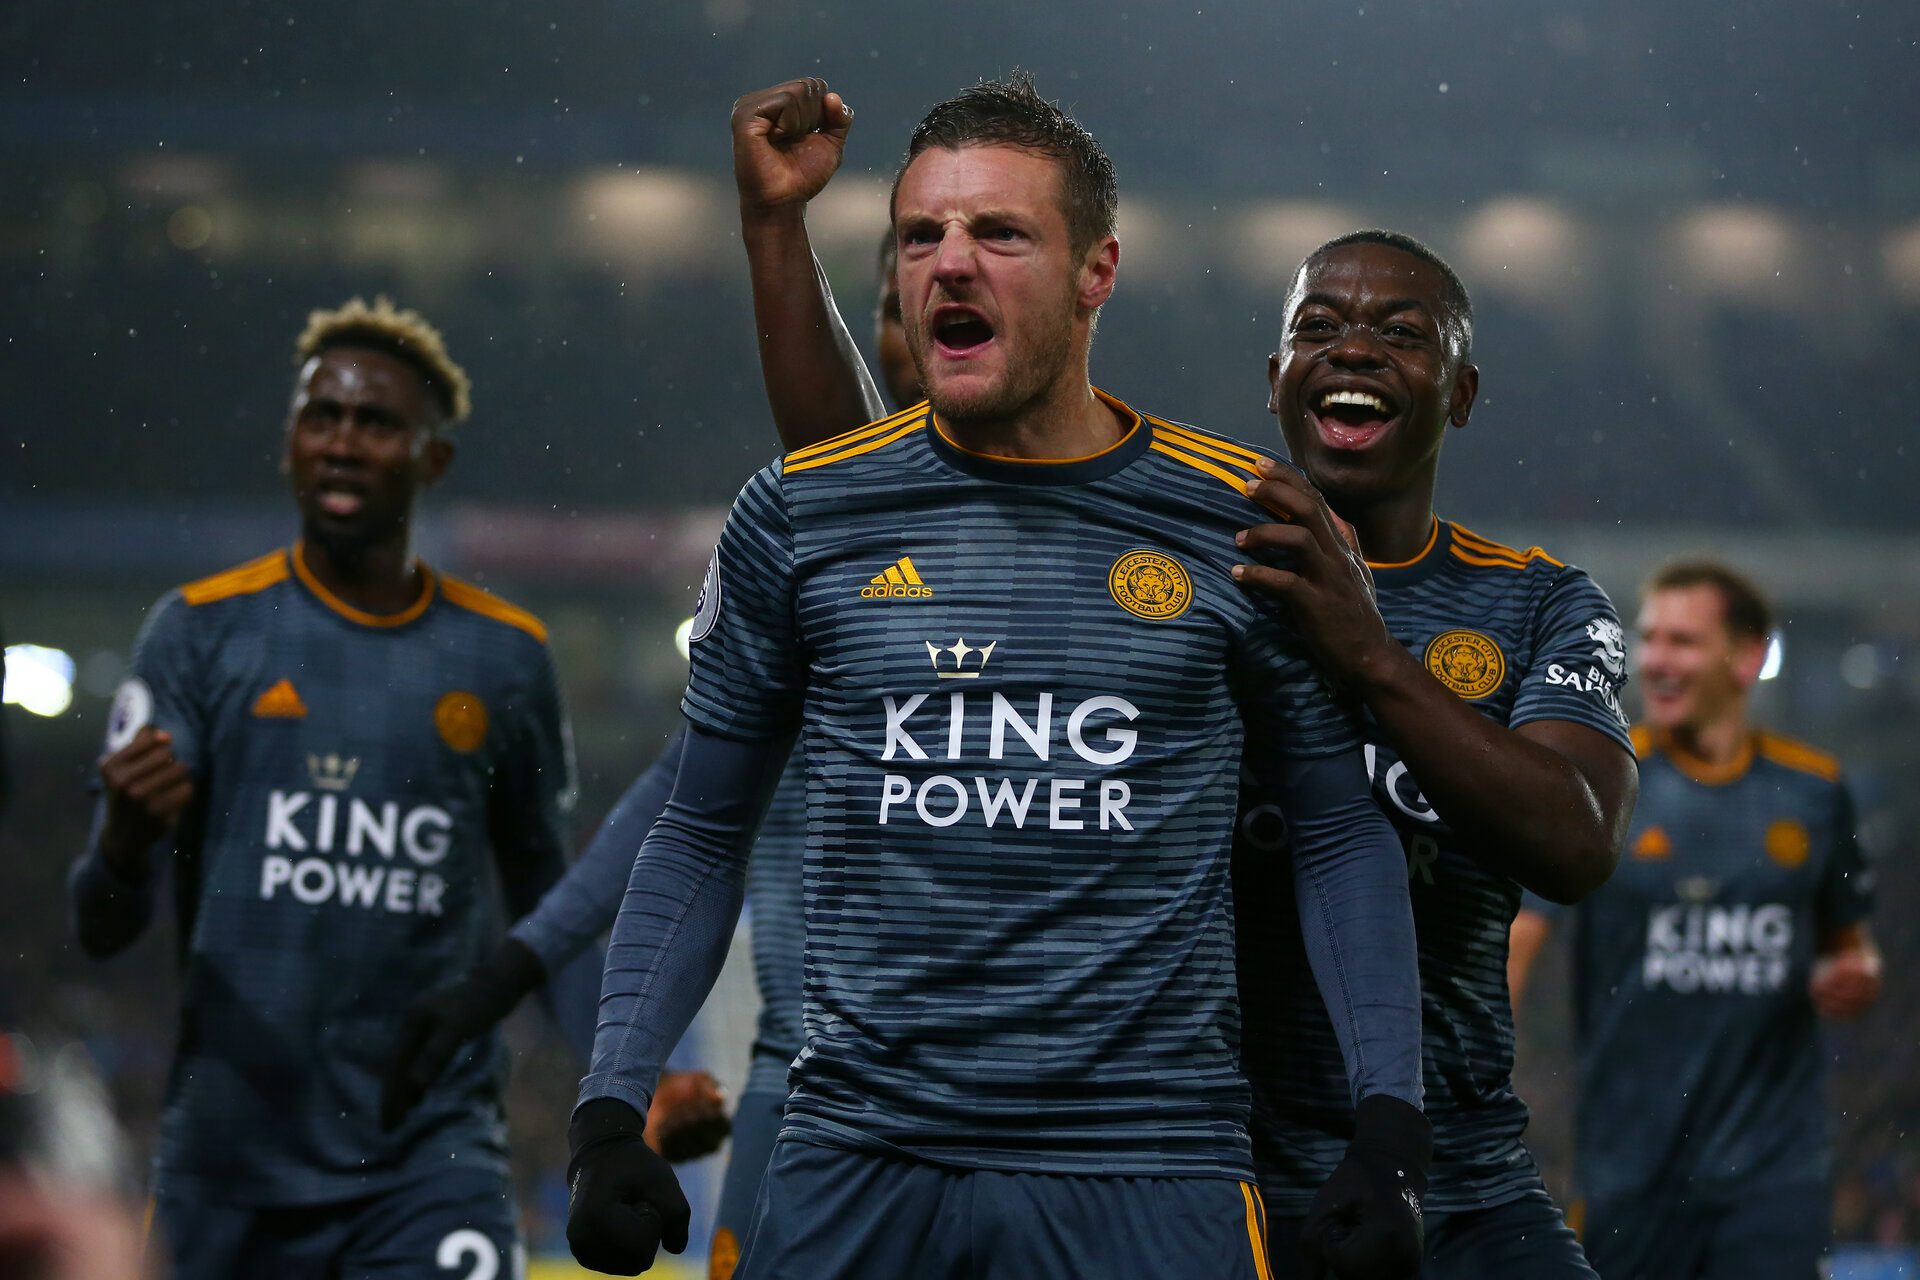 BRIGHTON, ENGLAND - NOVEMBER 24:   Jamie Vardy of Leicester City celebrates with team-mates after scoring his team's first goal from the penalty spot during the Premier League match between Brighton & Hove Albion and Leicester City at American Express Community Stadium on November 24, 2018 in Brighton, United Kingdom. (Photo by Dan Istitene/Getty Images)